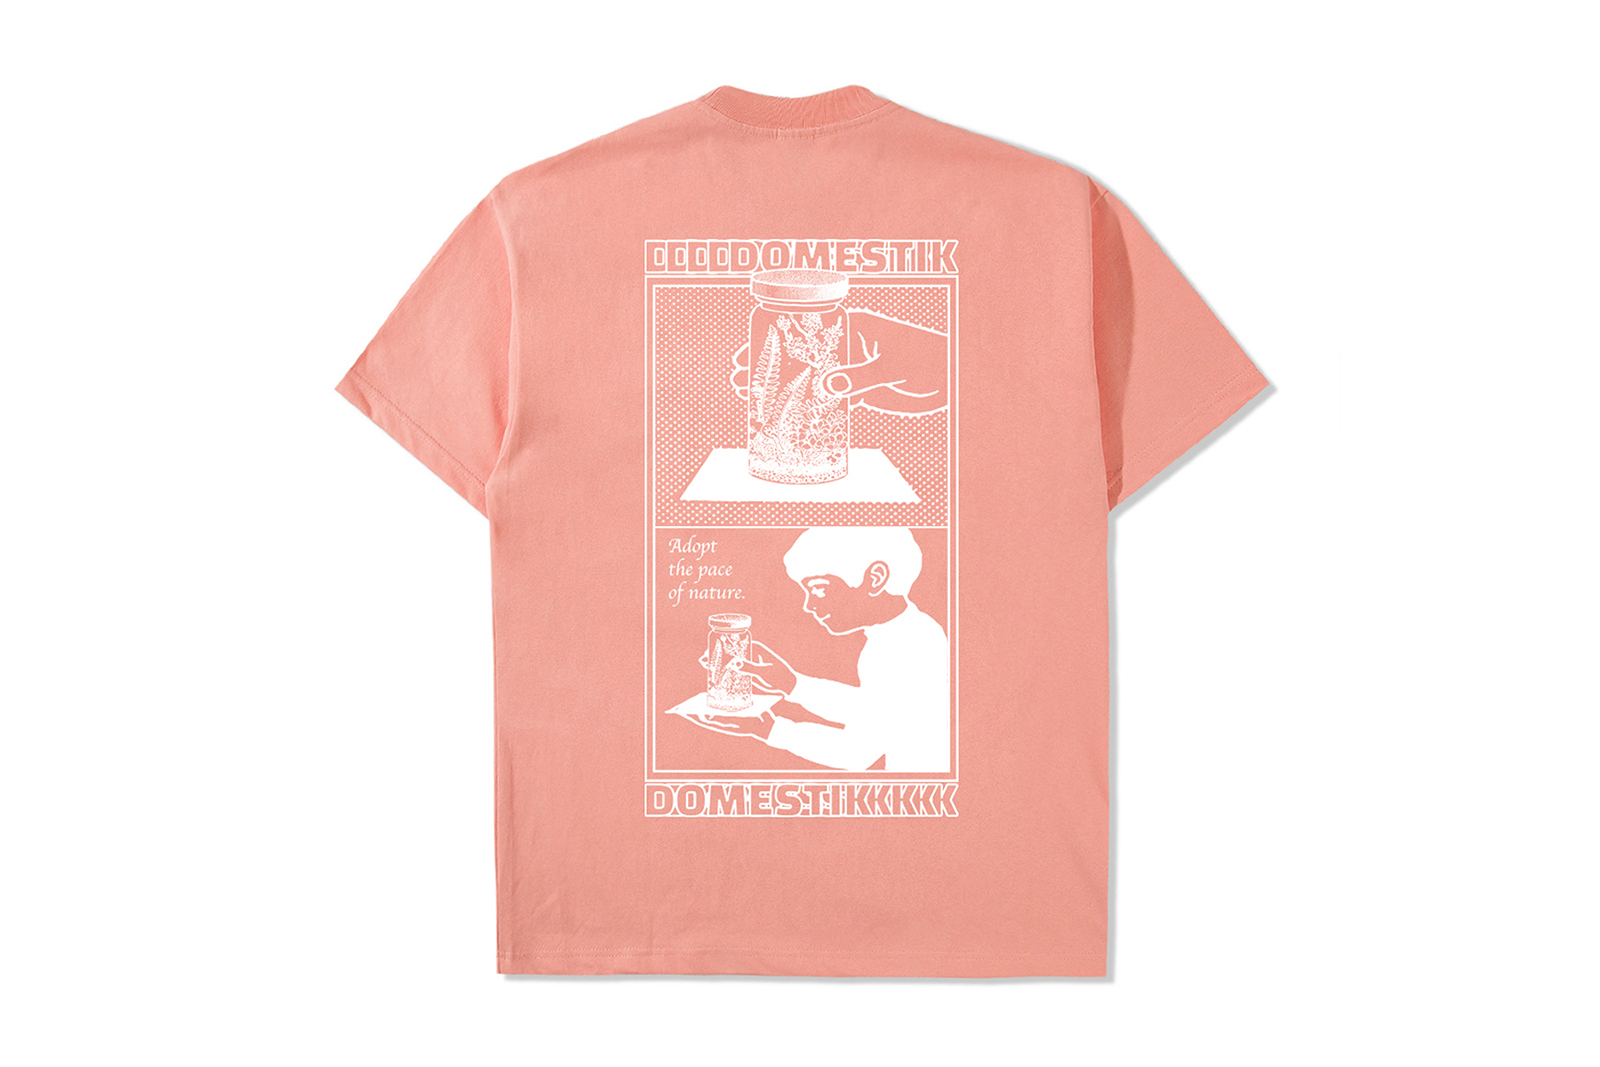 pace-of-nature-tee-pink_p1